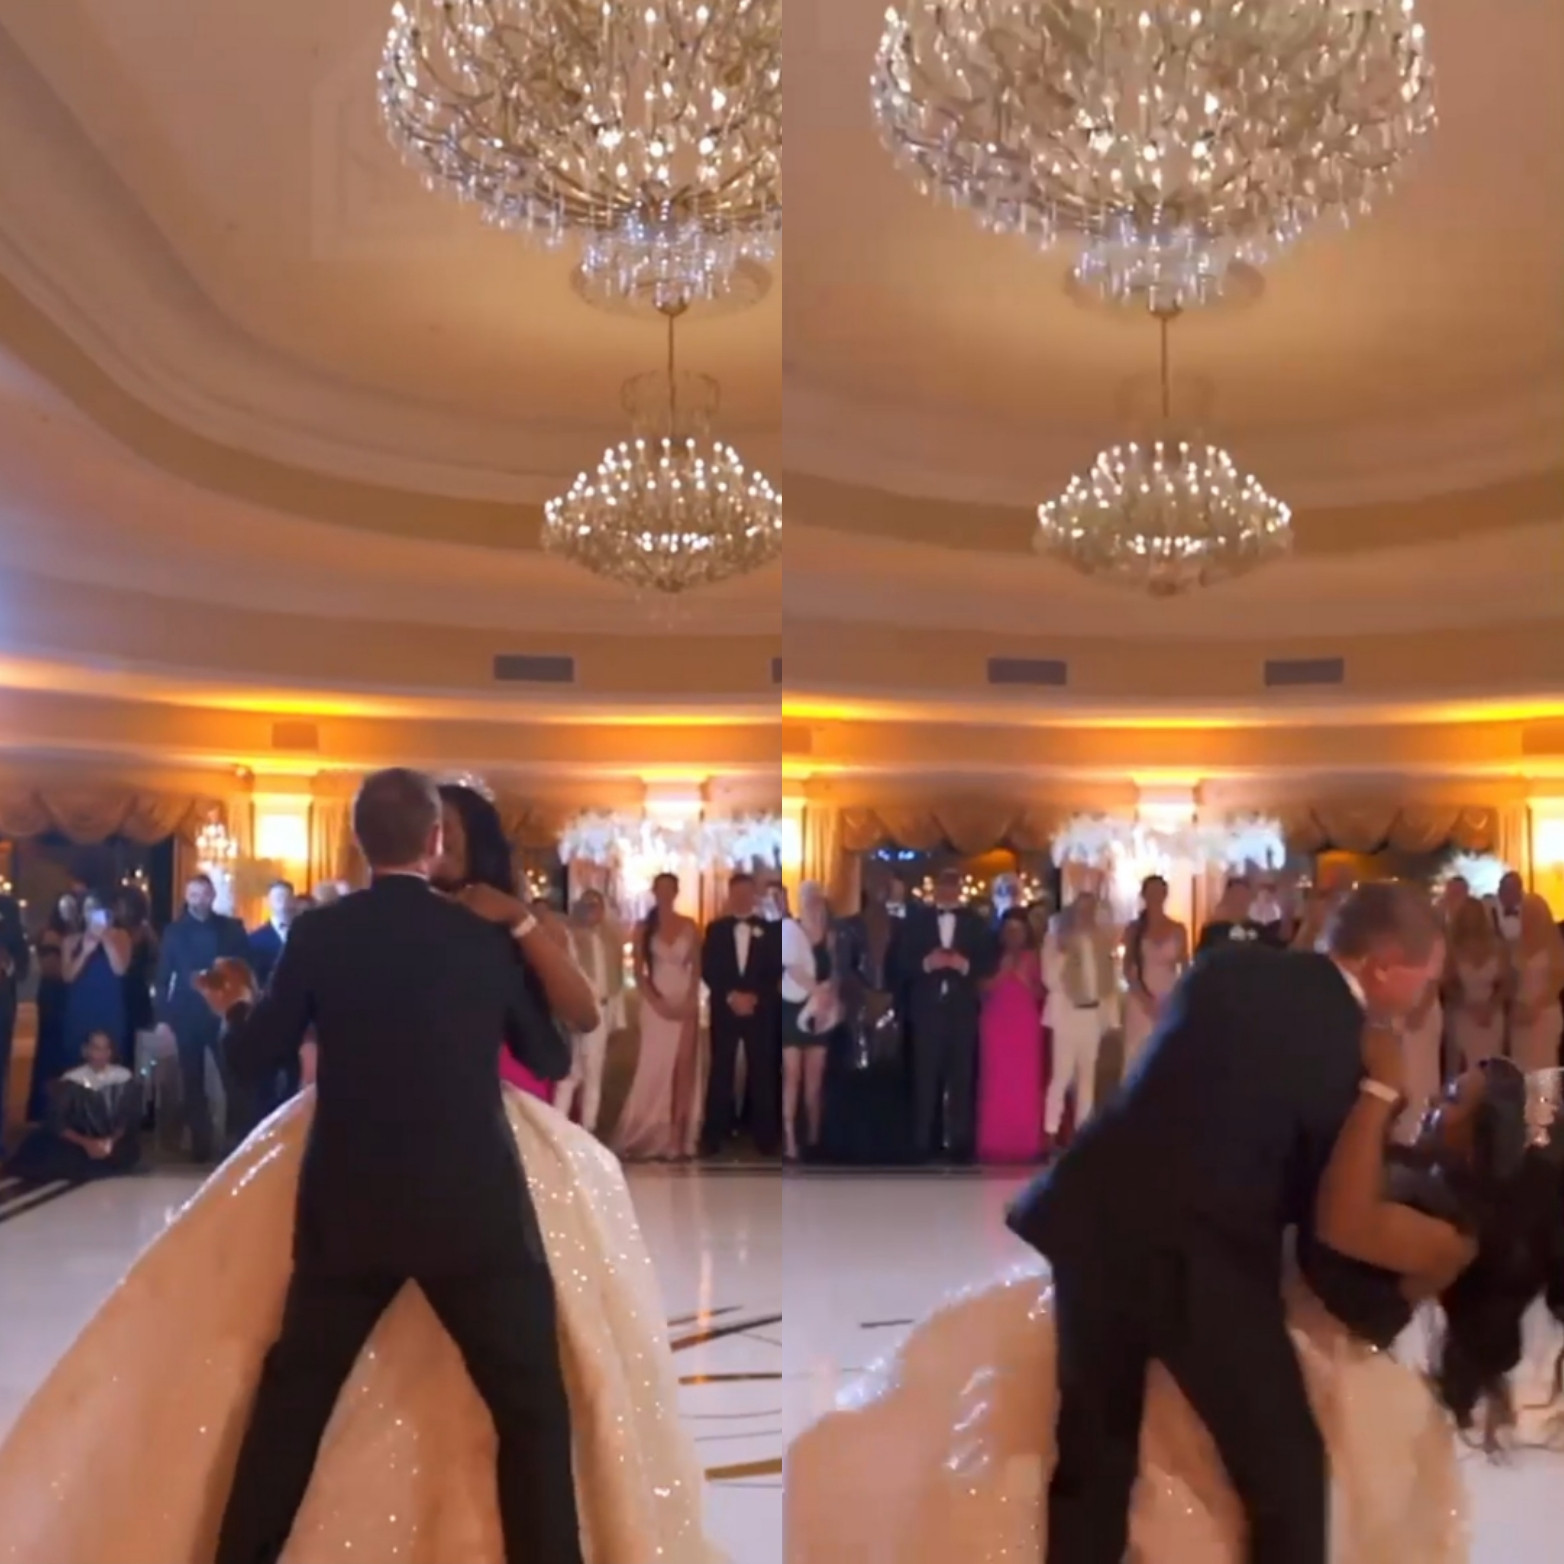 Couple suffer embarrassing fall during first dance at their wedding (video)